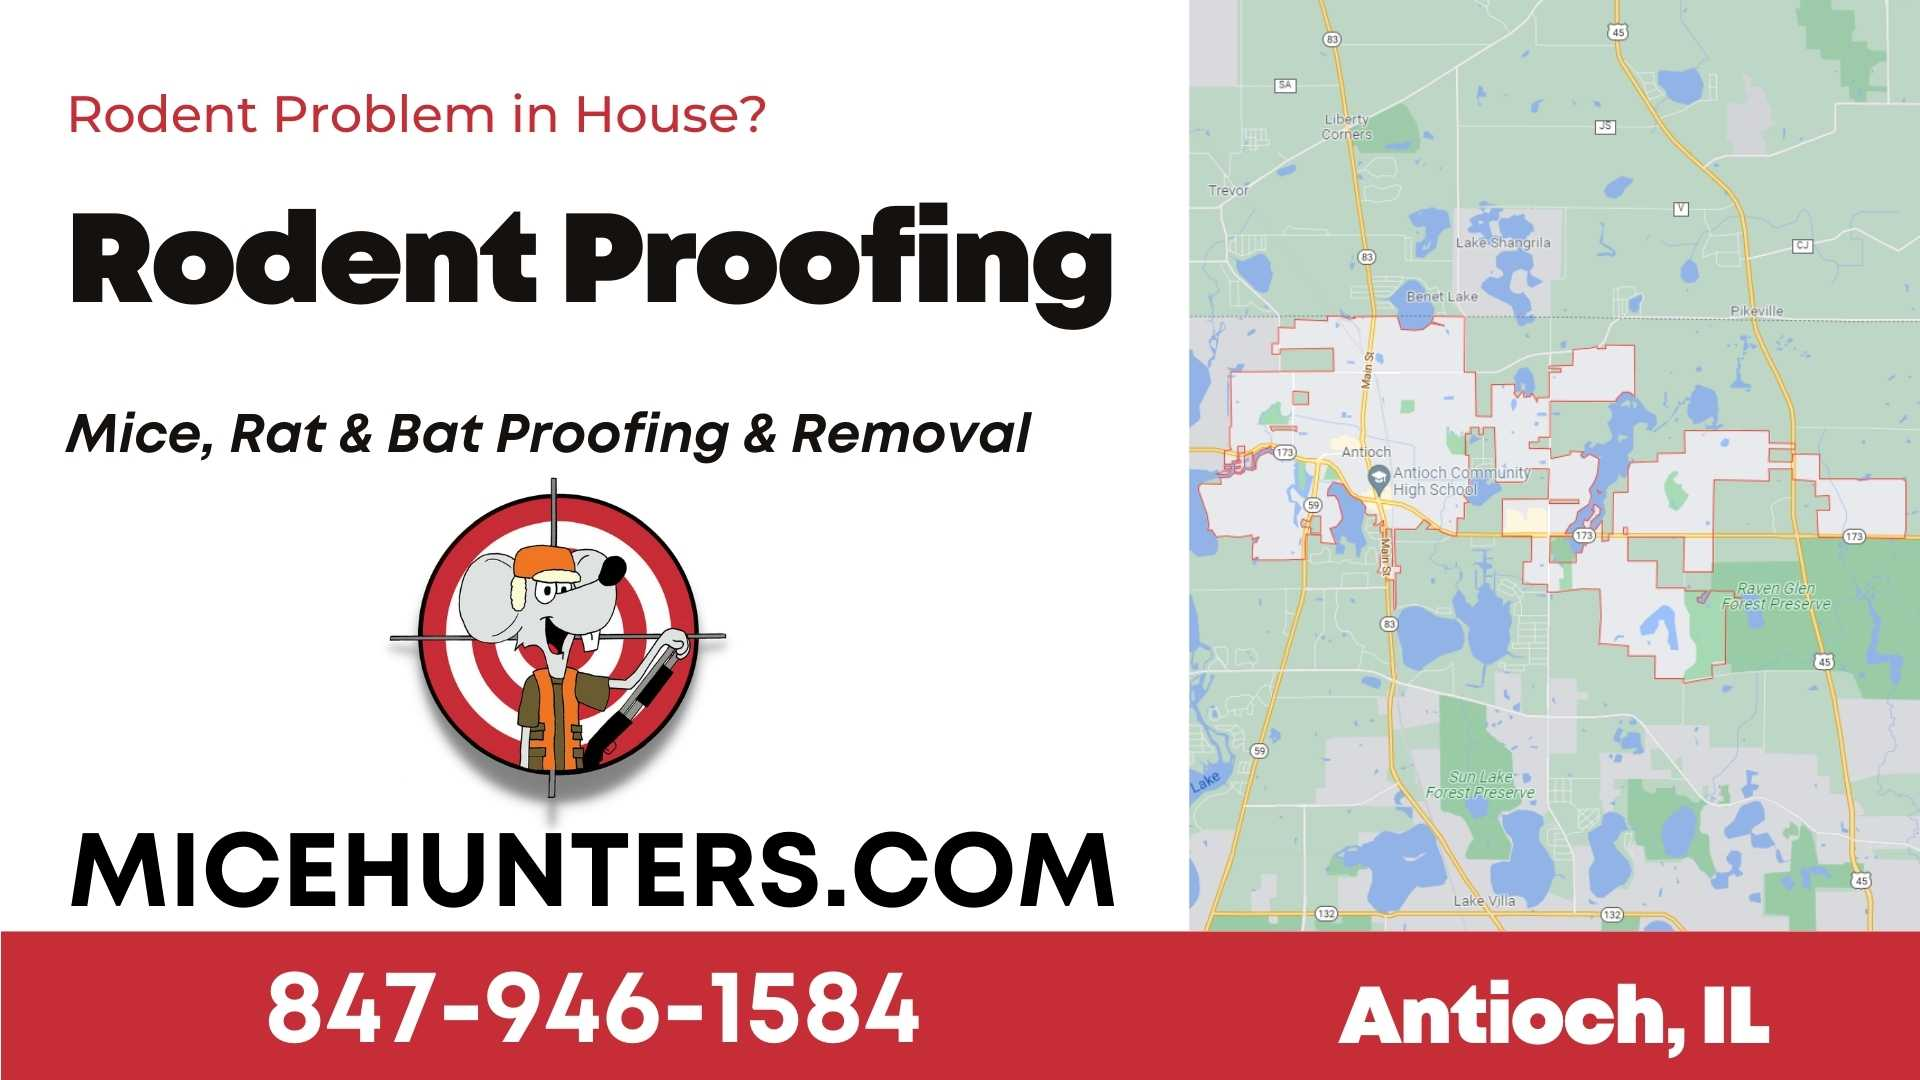 Antioch Rodent and Mice Proofing Exterminator near me